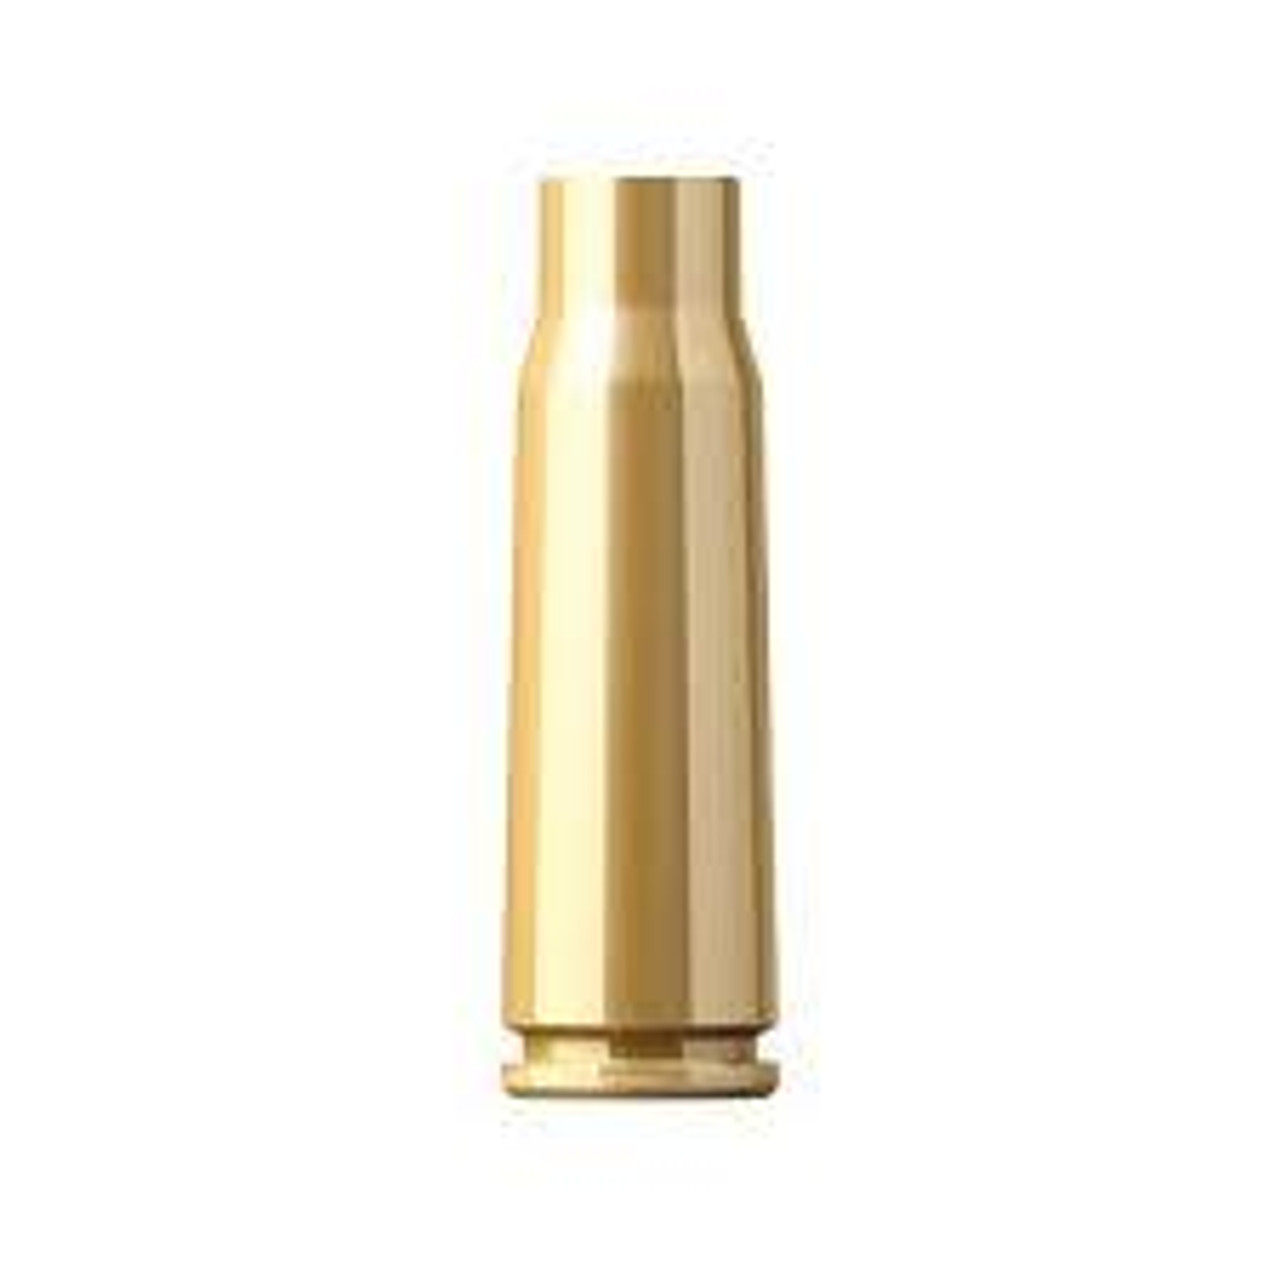 Sellier & Bellot - 7.62x39 Unprimed New Brass Cases (Bag of 20)